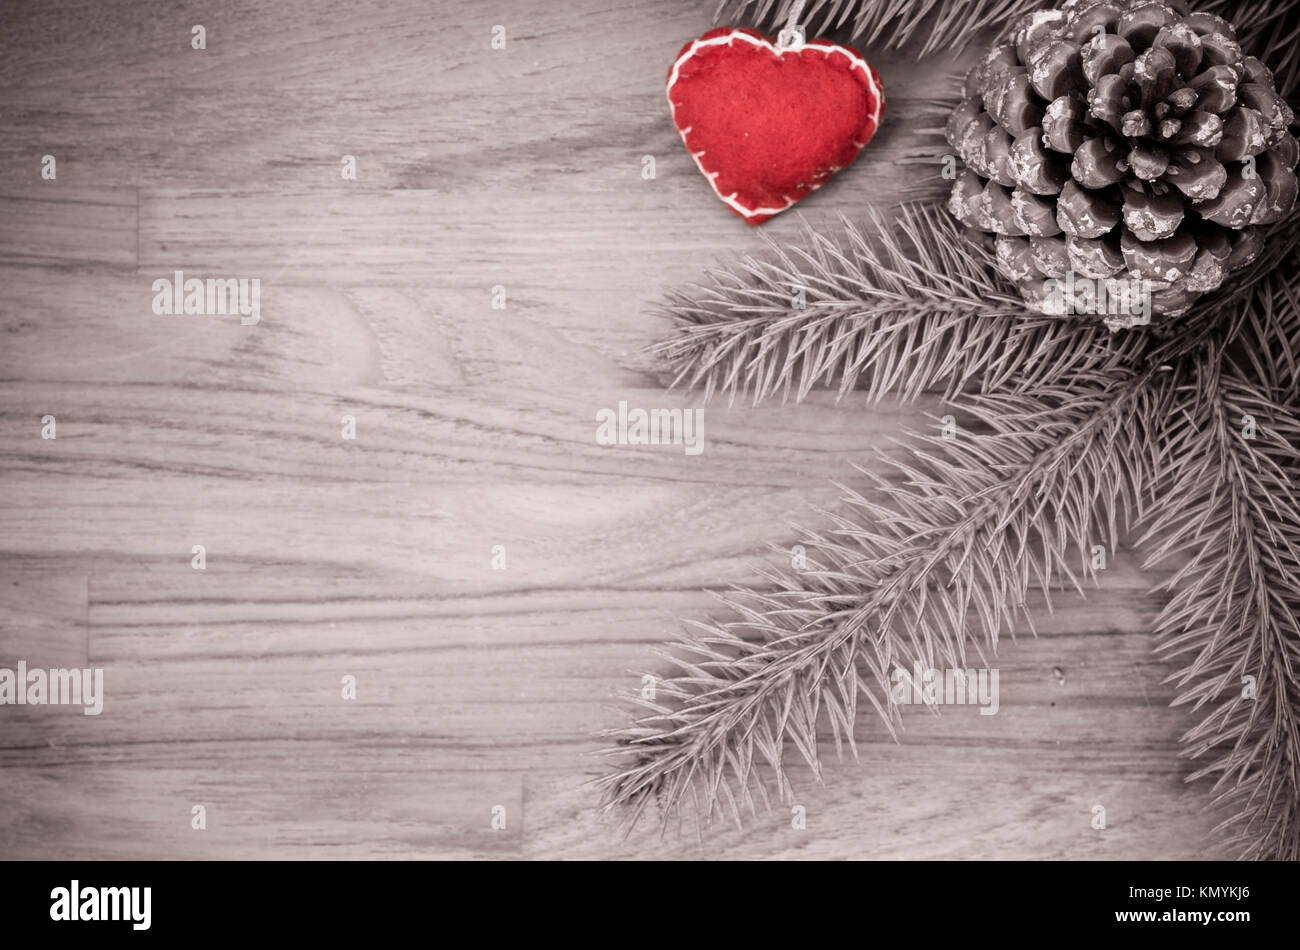 conifer cone and decorations on a fir twigs background - decorative nature backgrounds - Stock Image